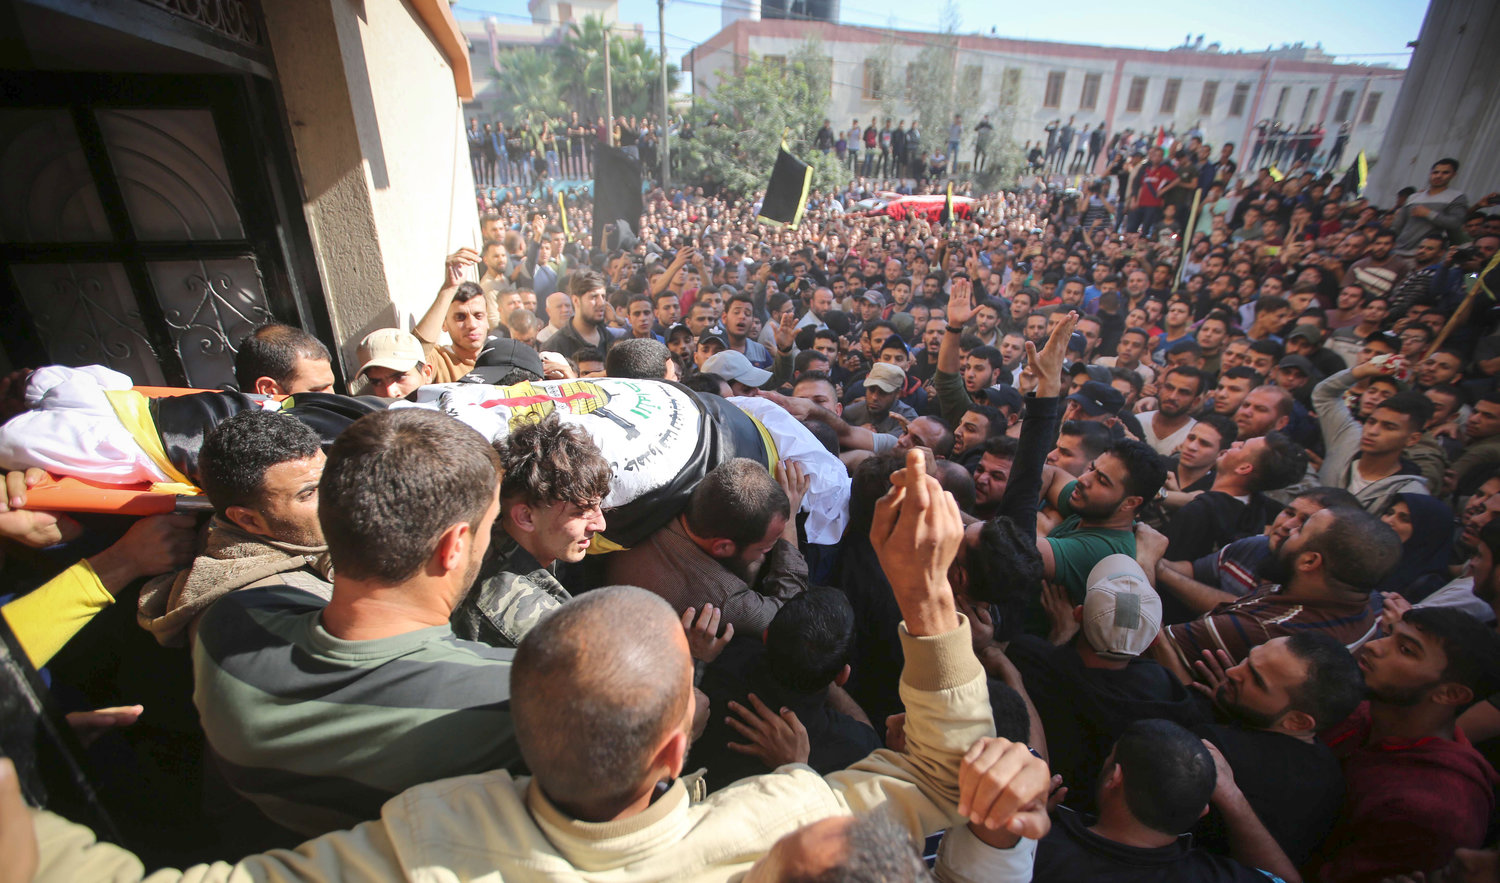 Mourners carry the body of Palestinian Islamic Jihad field commander Baha Abu Al-Atta during his funeral in Gaza City, after he was killed by an Israeli strike, in a targeted attack, on Nov. 12.